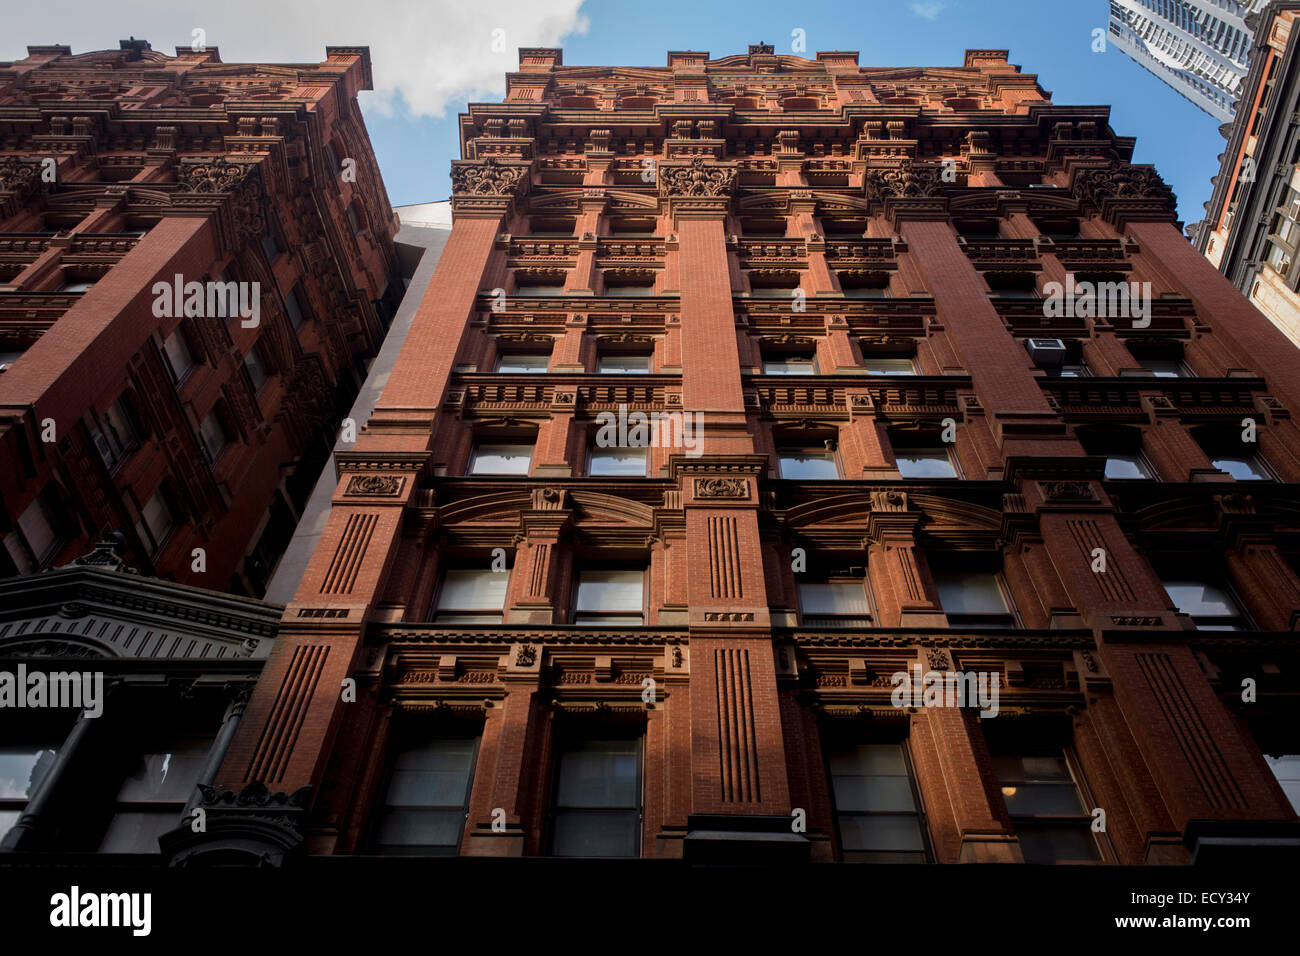 Captivating Red Brick Apartment Building In Manhattan, New York City.   Stock Image